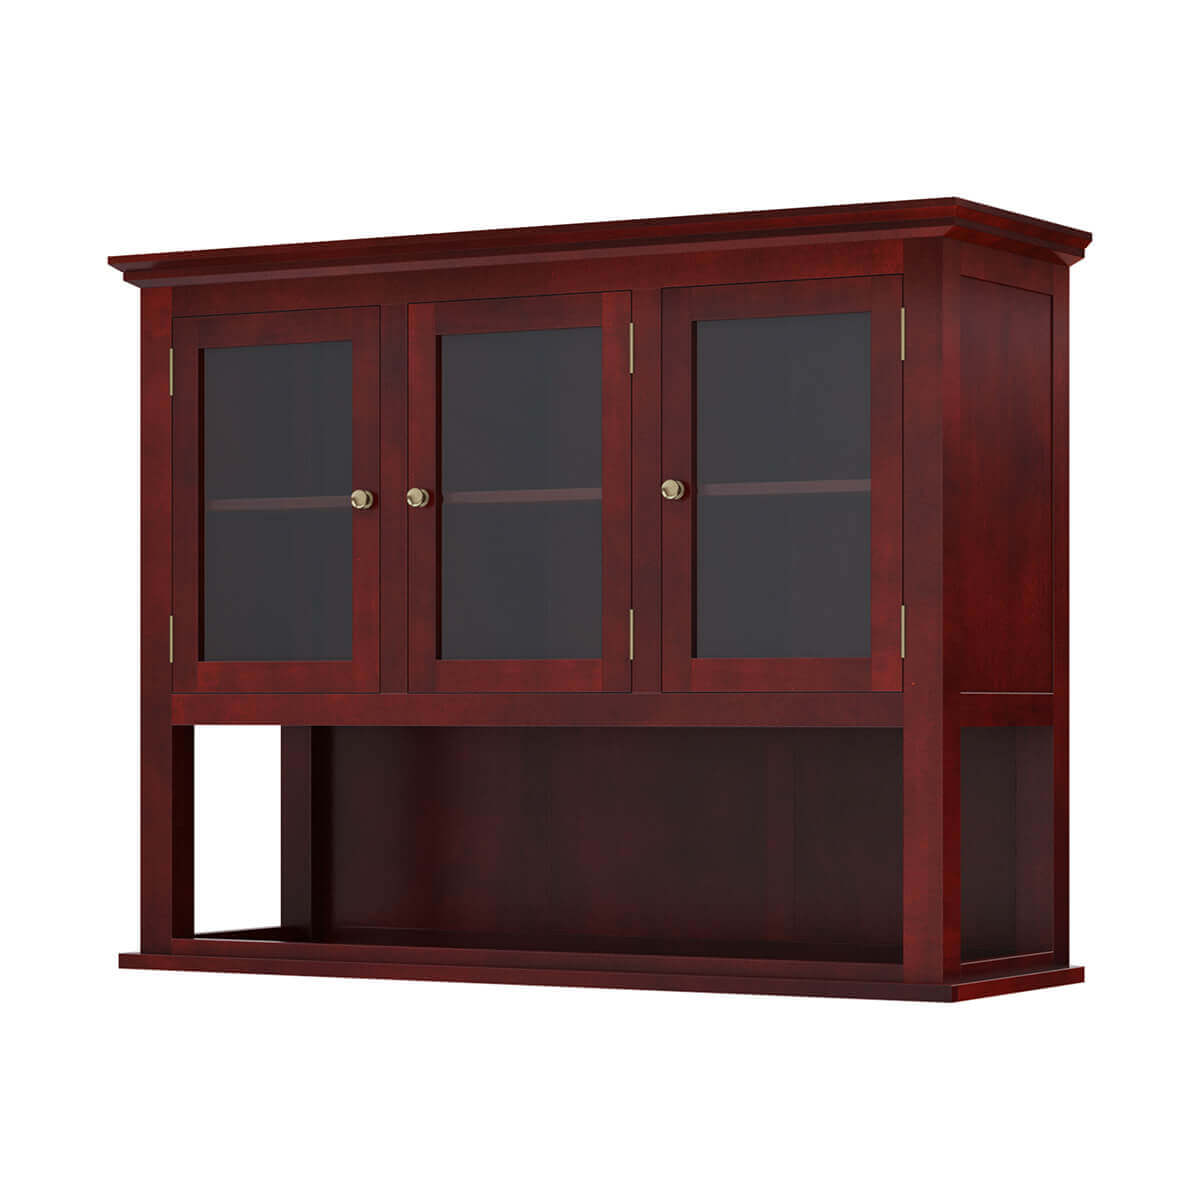 Barryton Solid Mahogany Wood Hutch Top